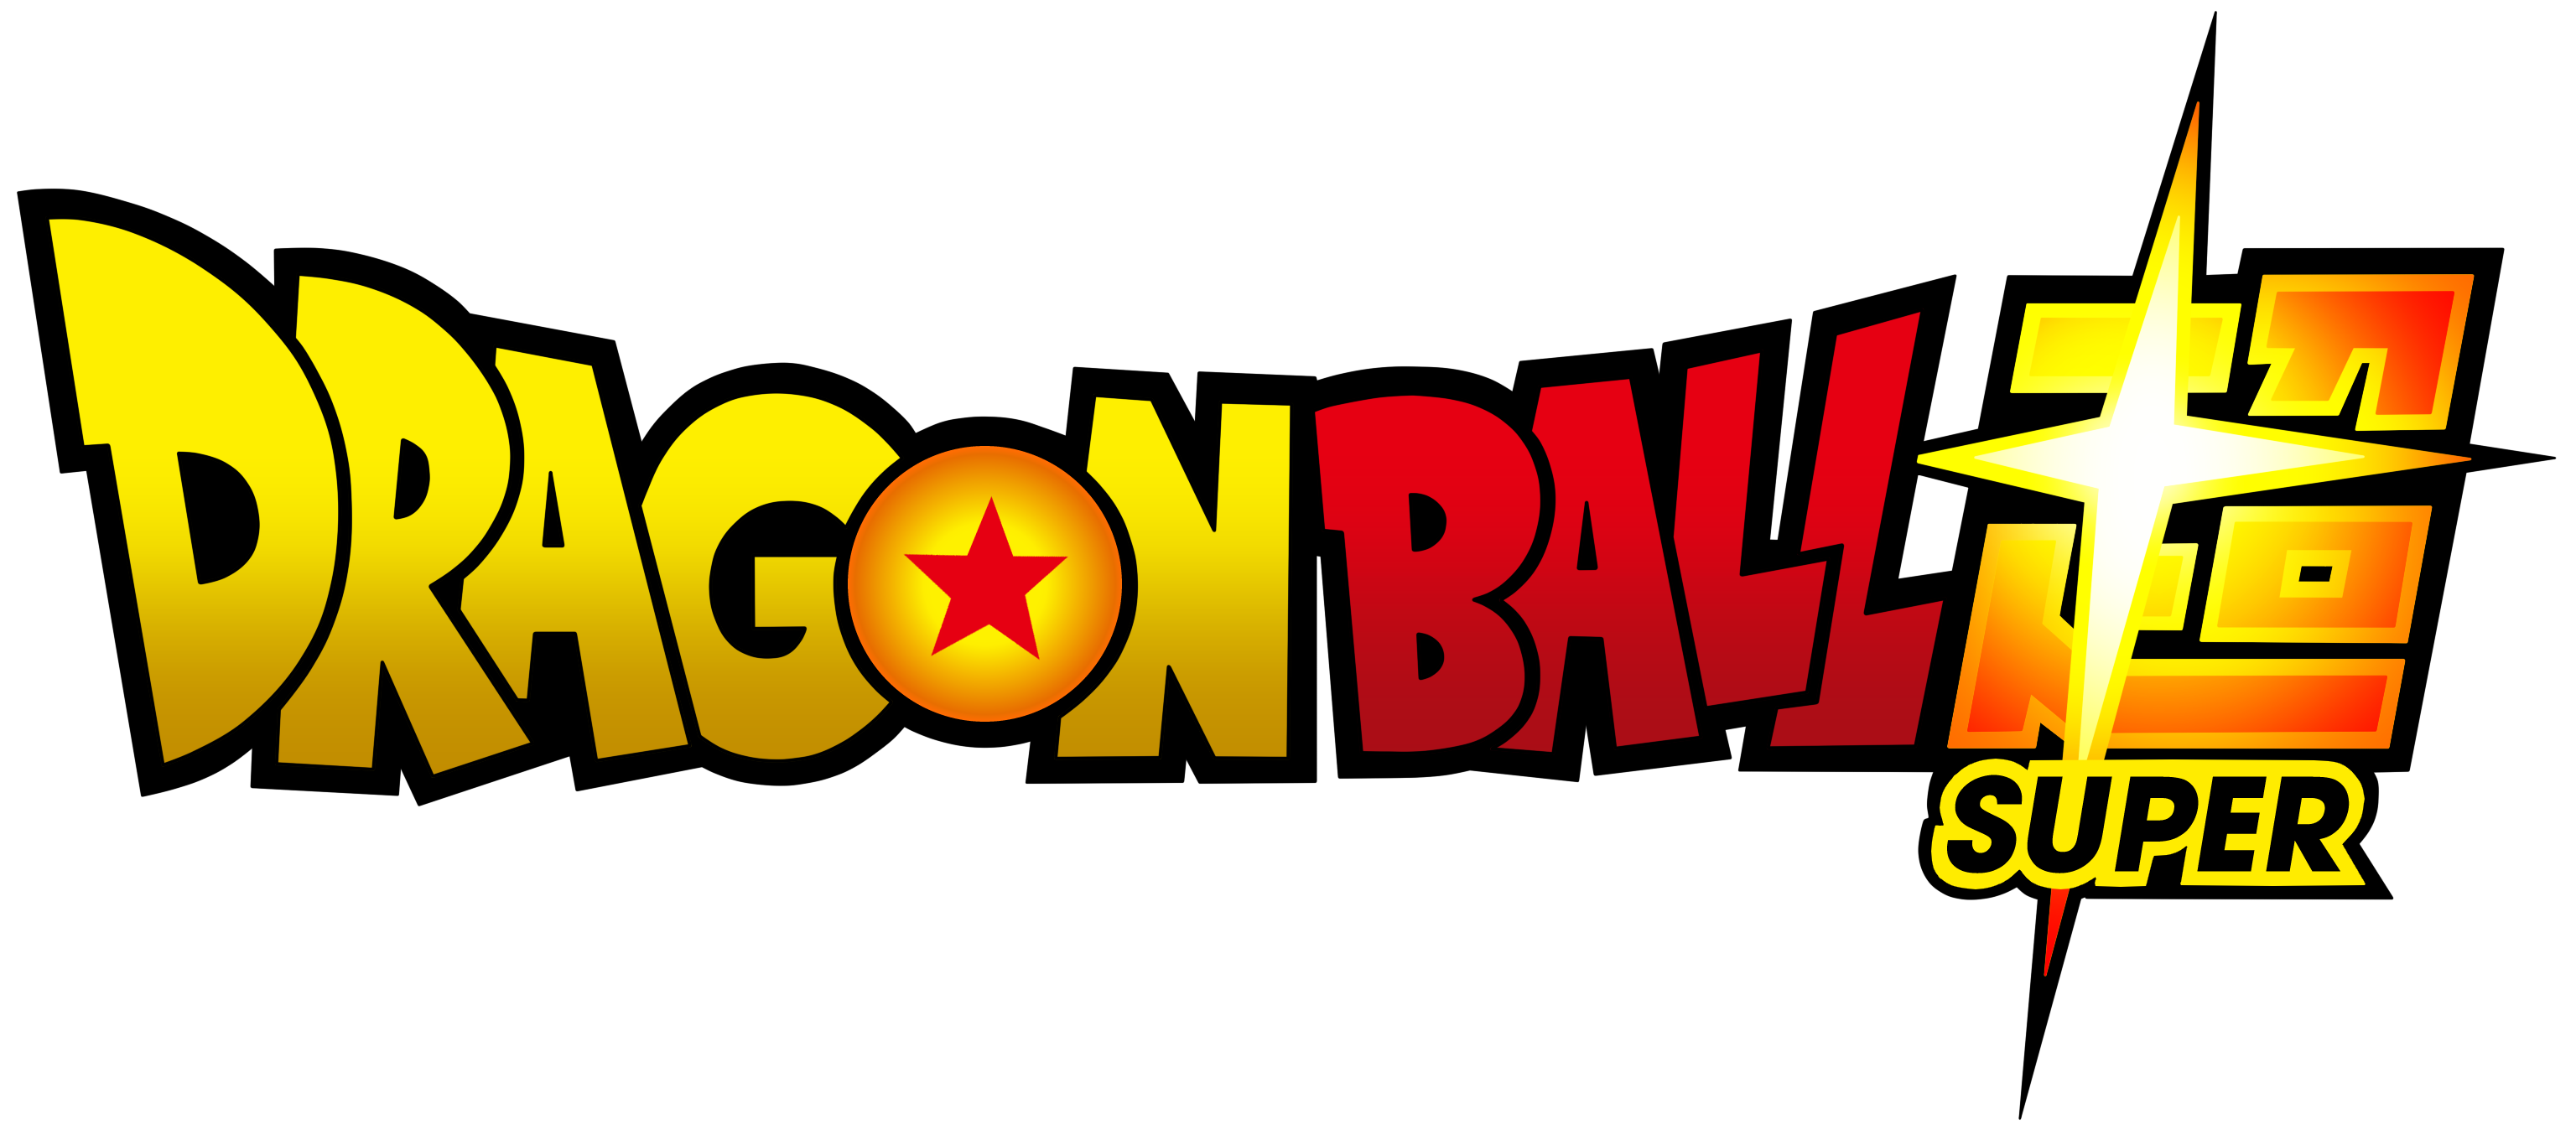 dragon ball super logo by victormontecinos on deviantart victor dragone everett victor dragone everett